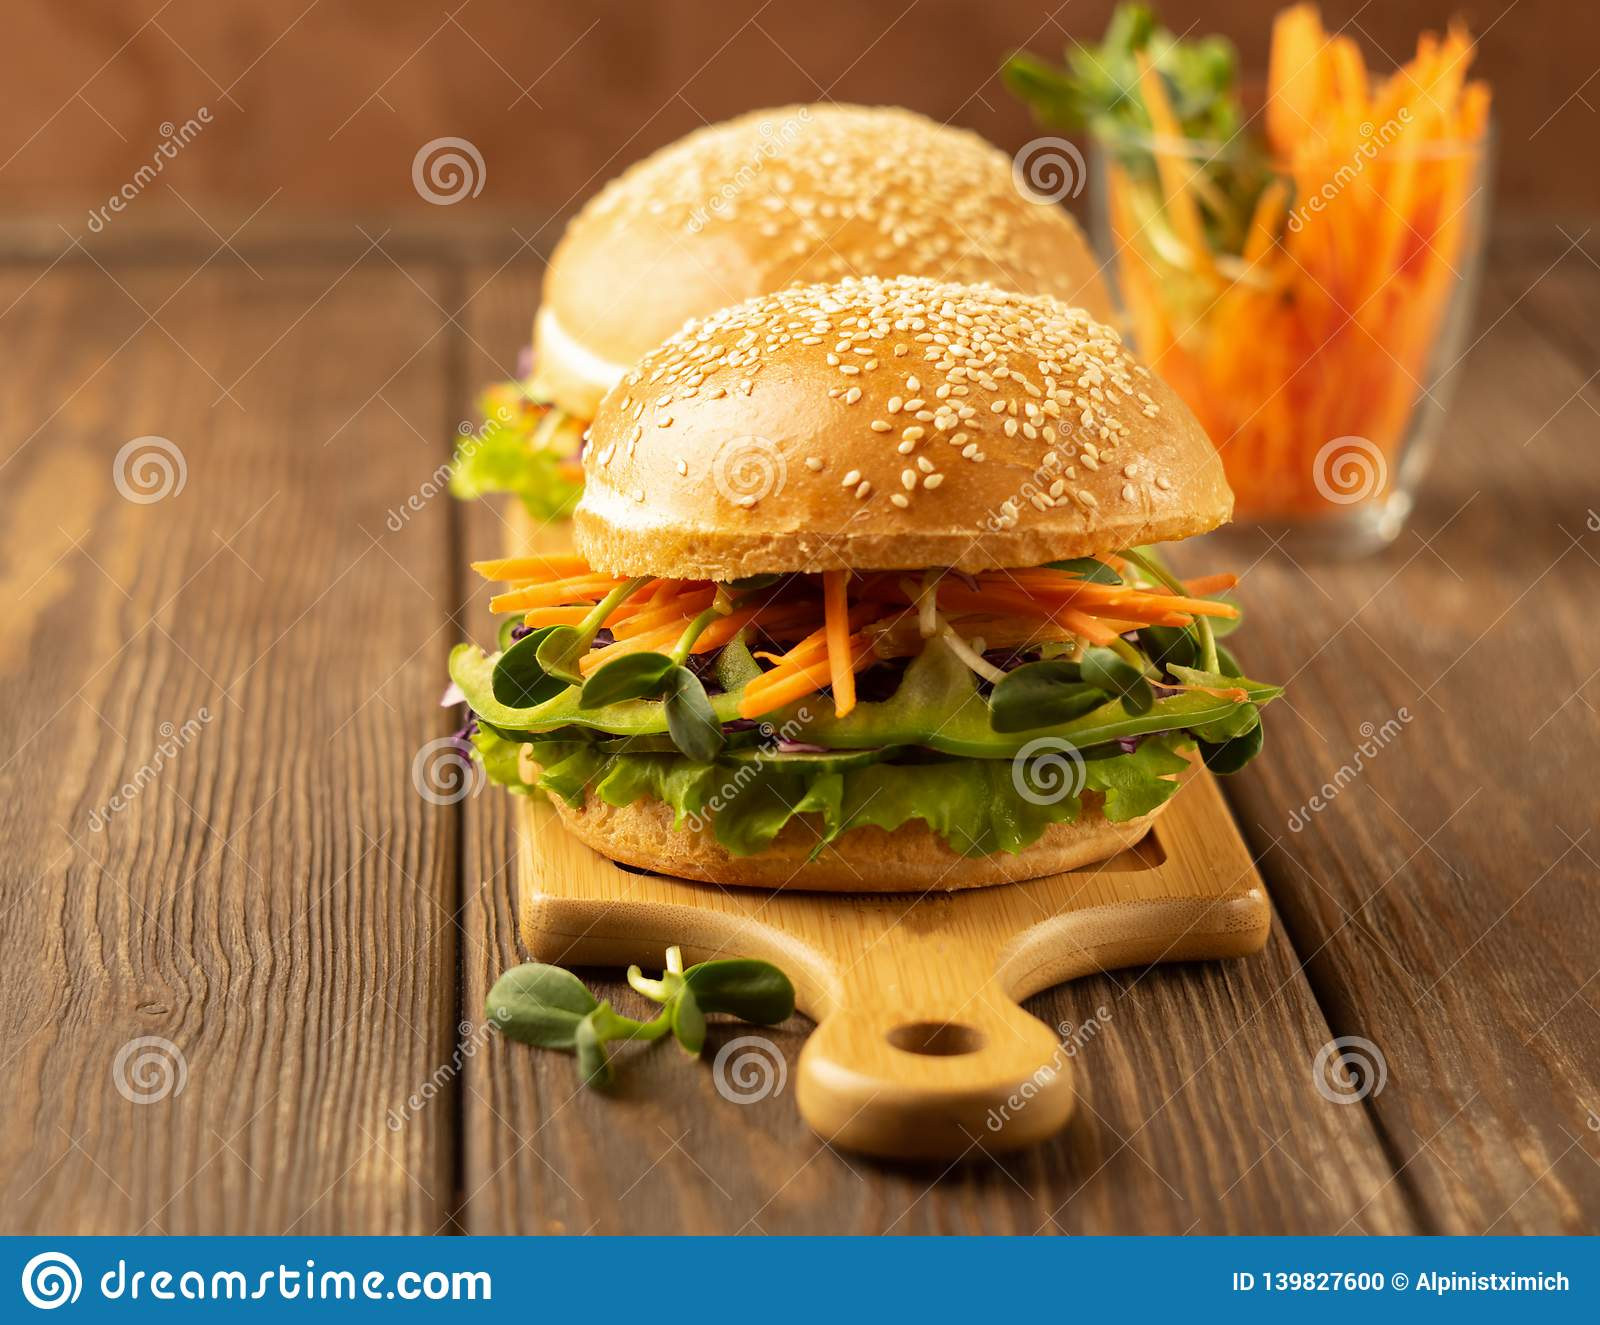 Appetizing veggie sandwich with fresh vegetables on a dark brown background. The concept of proper nutrition.